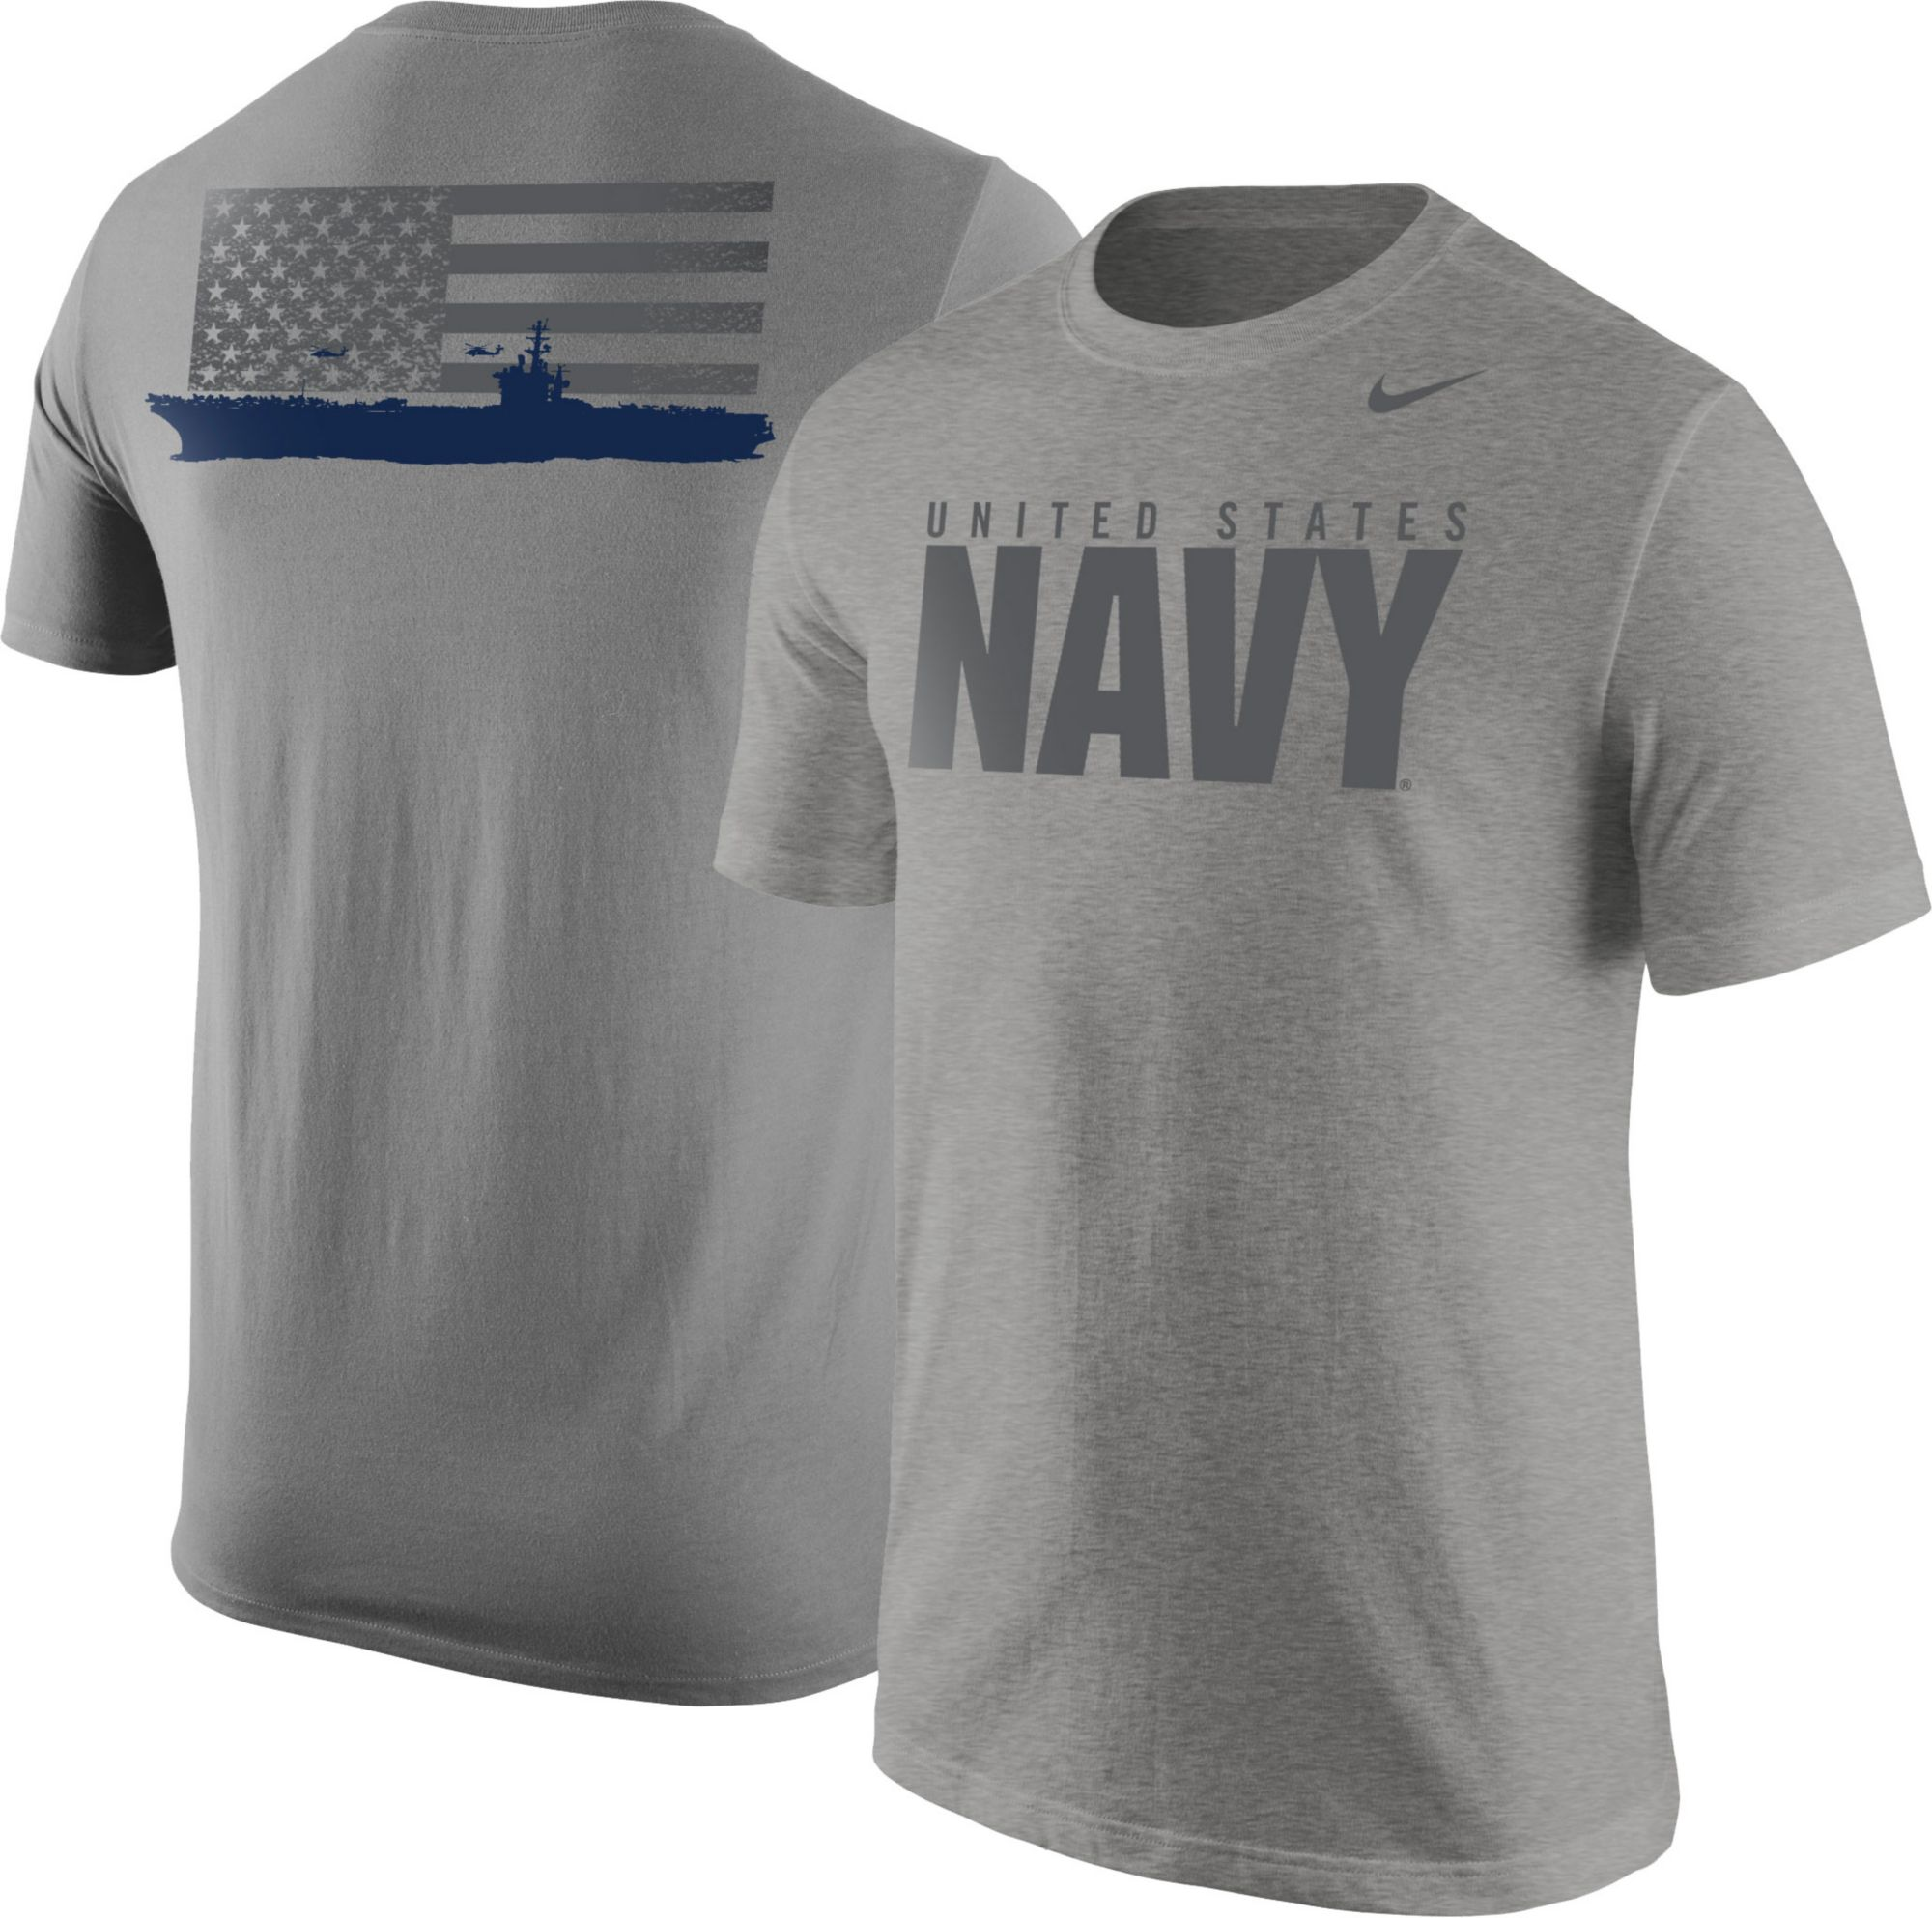 Nike United States Navy Aircraft Carrier